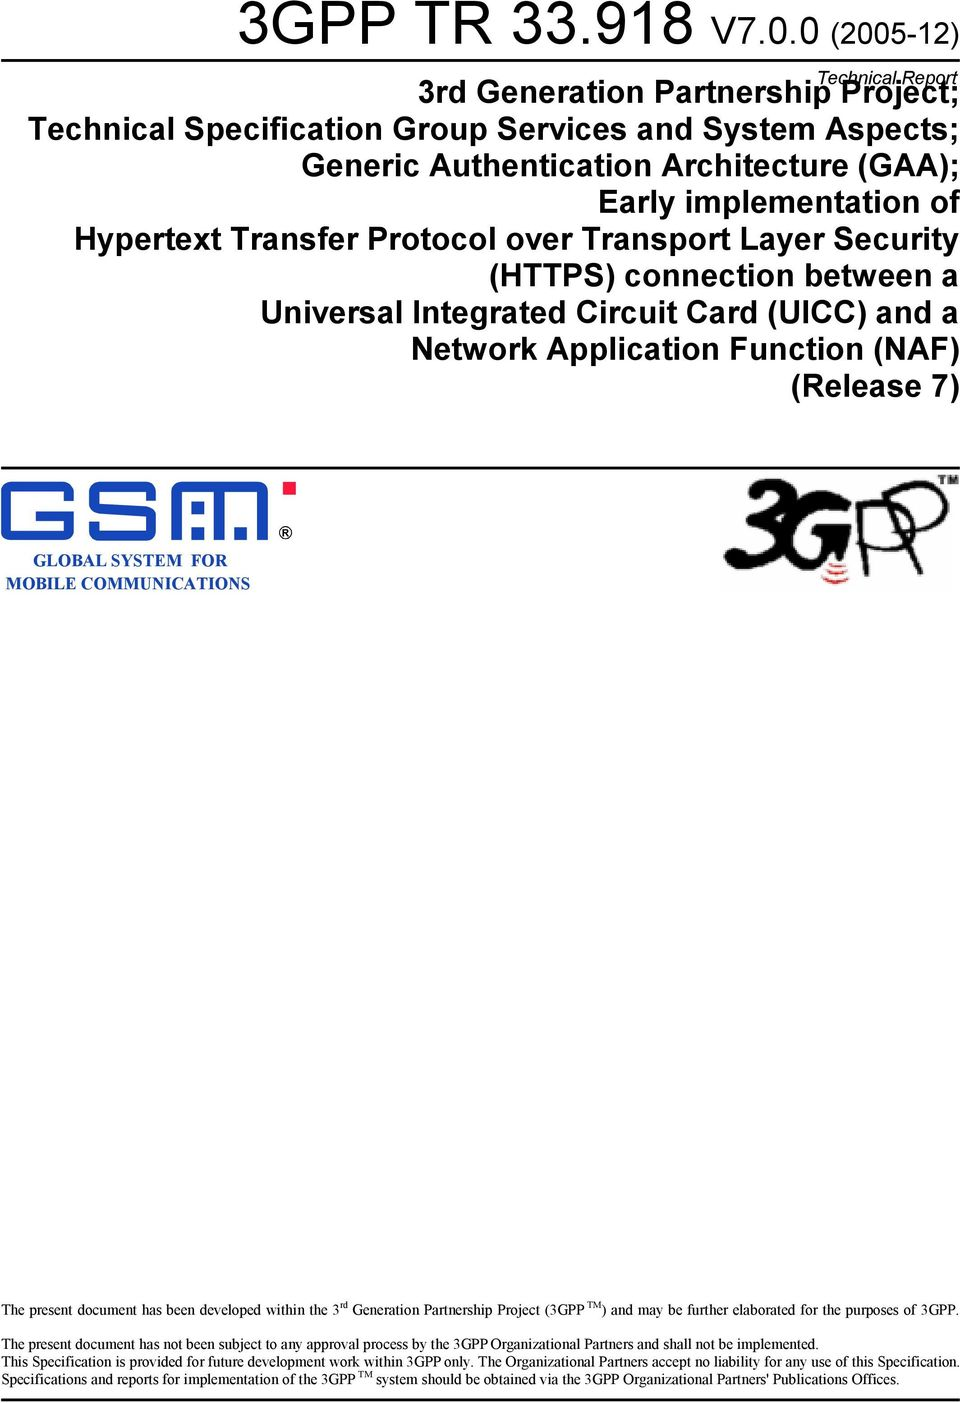 Hypertext Transfer Protocol over Transport Layer Security (HTTPS) connection between a Universal Integrated Circuit Card (UICC) and a Network Application Function (NAF) (Release 7) GLOBAL SYSTEM FOR